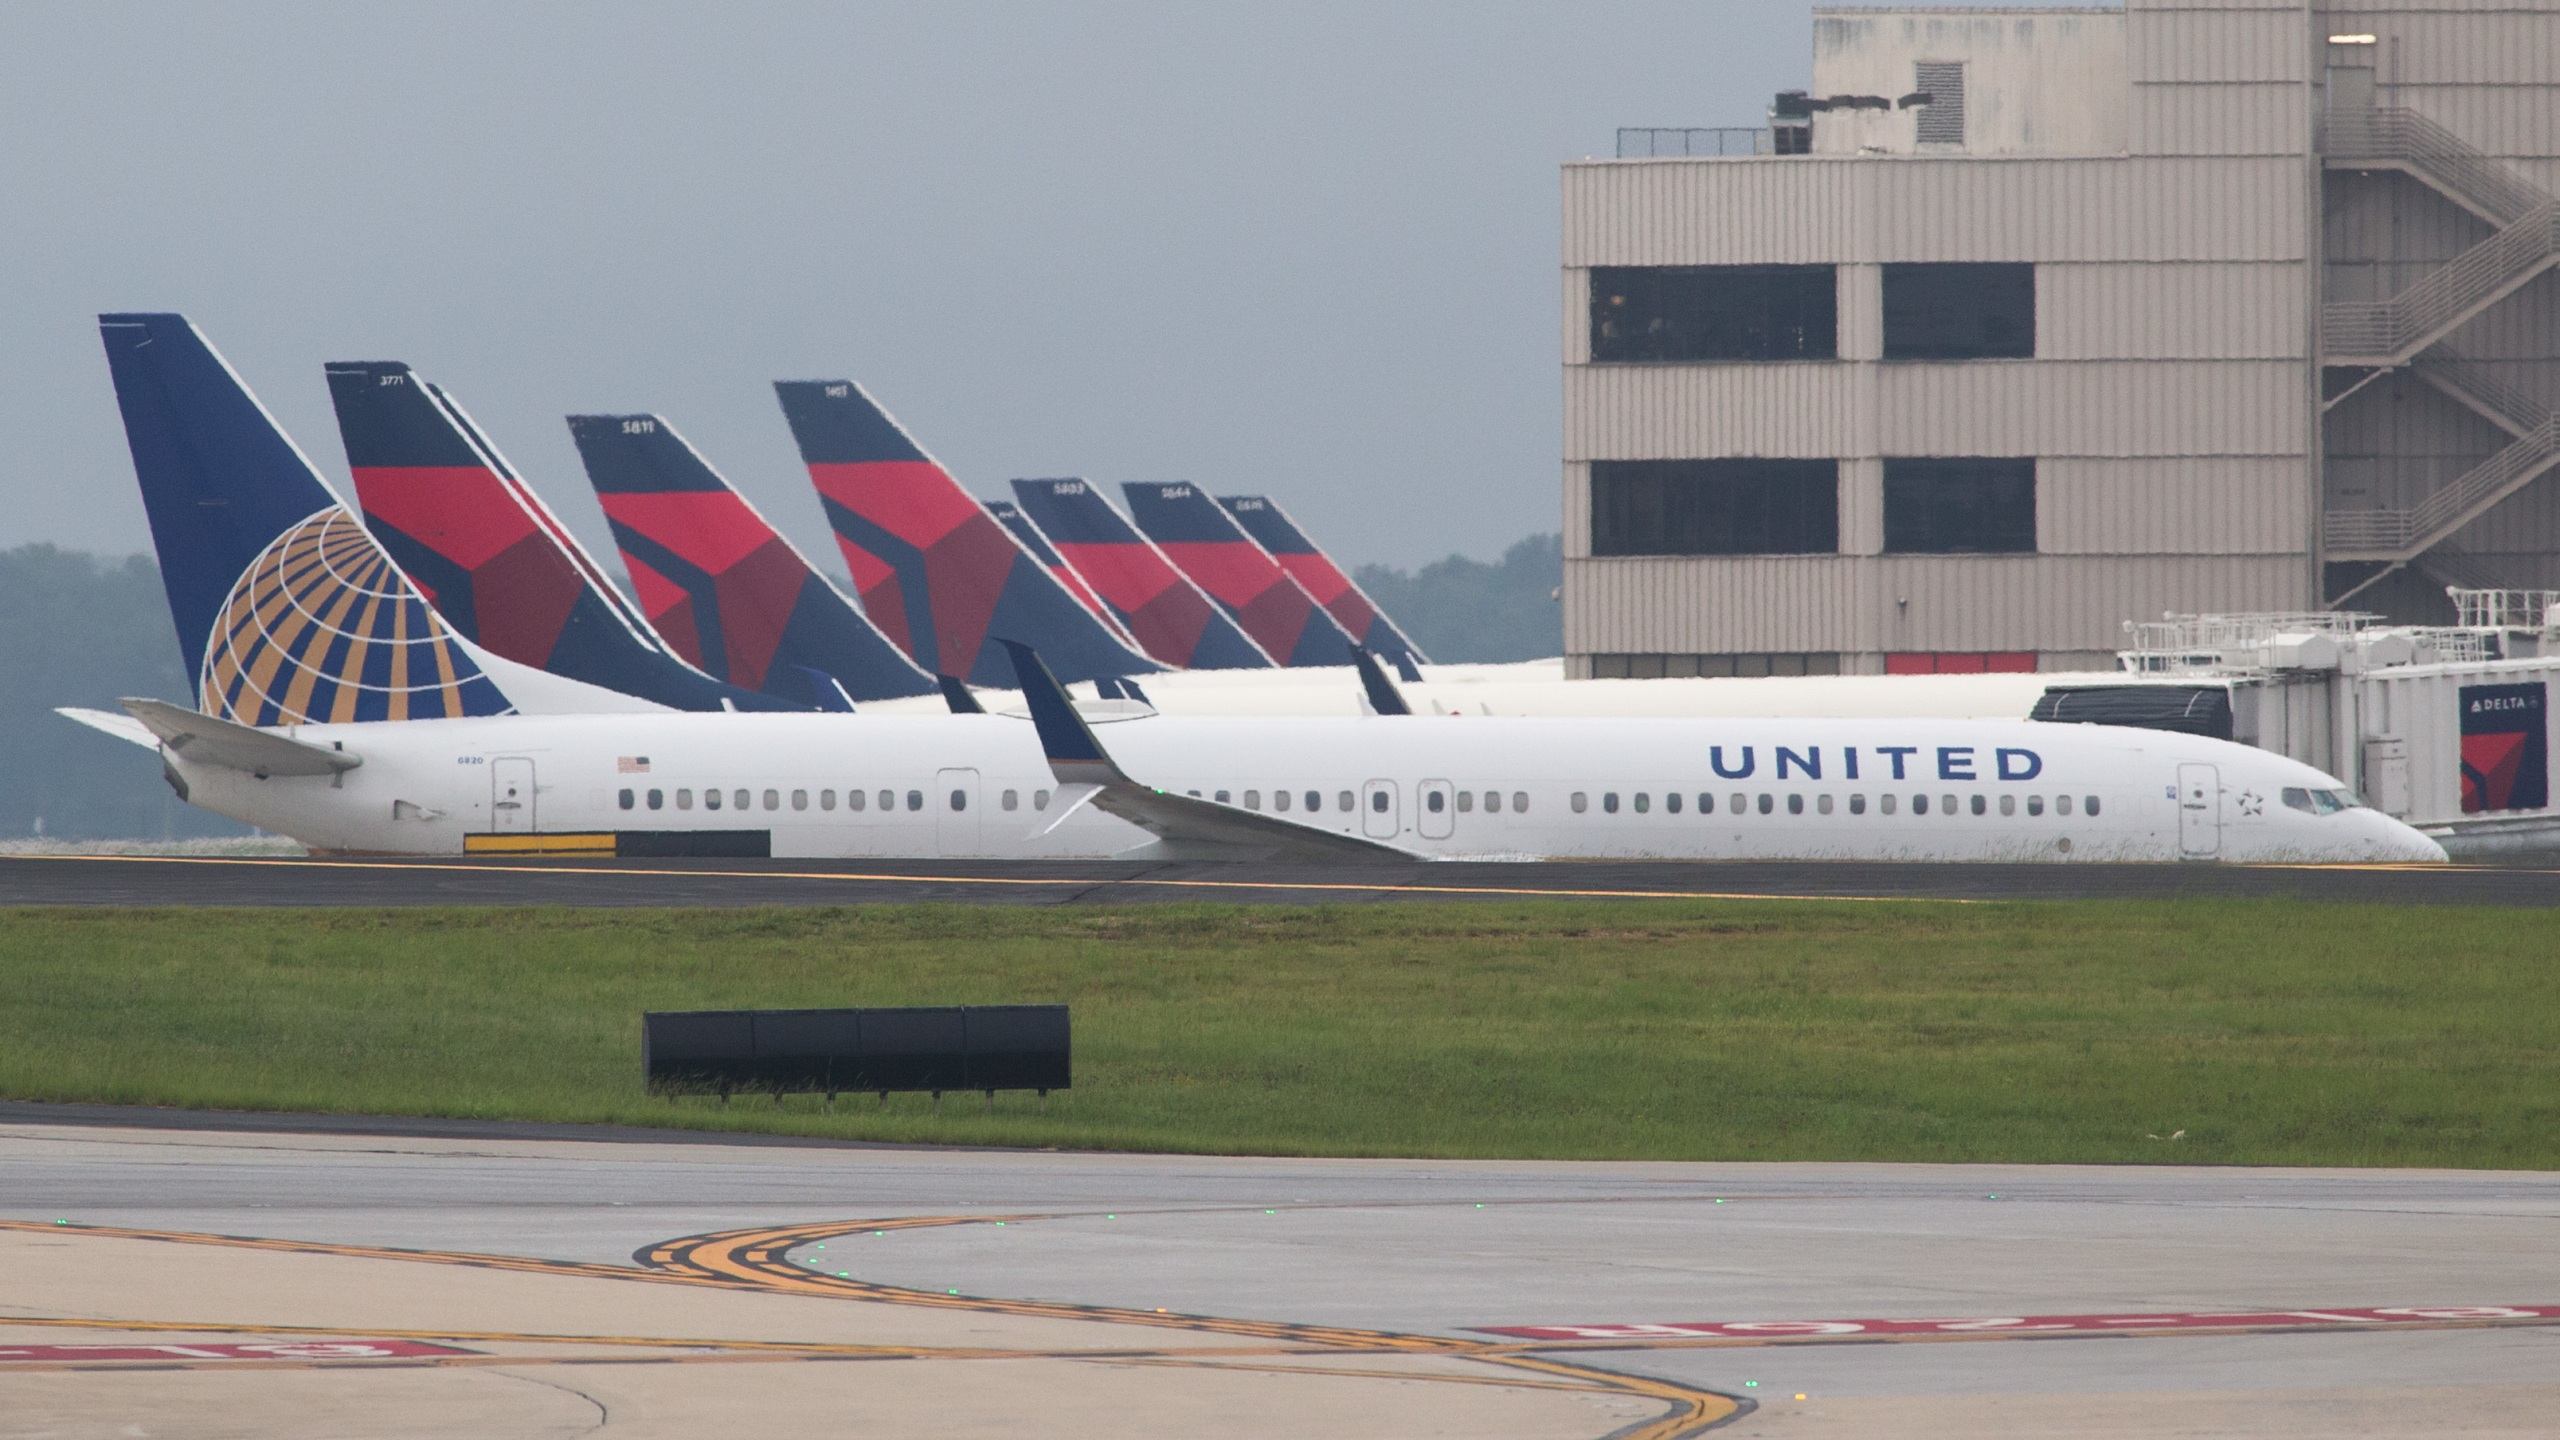 united airlines_231556